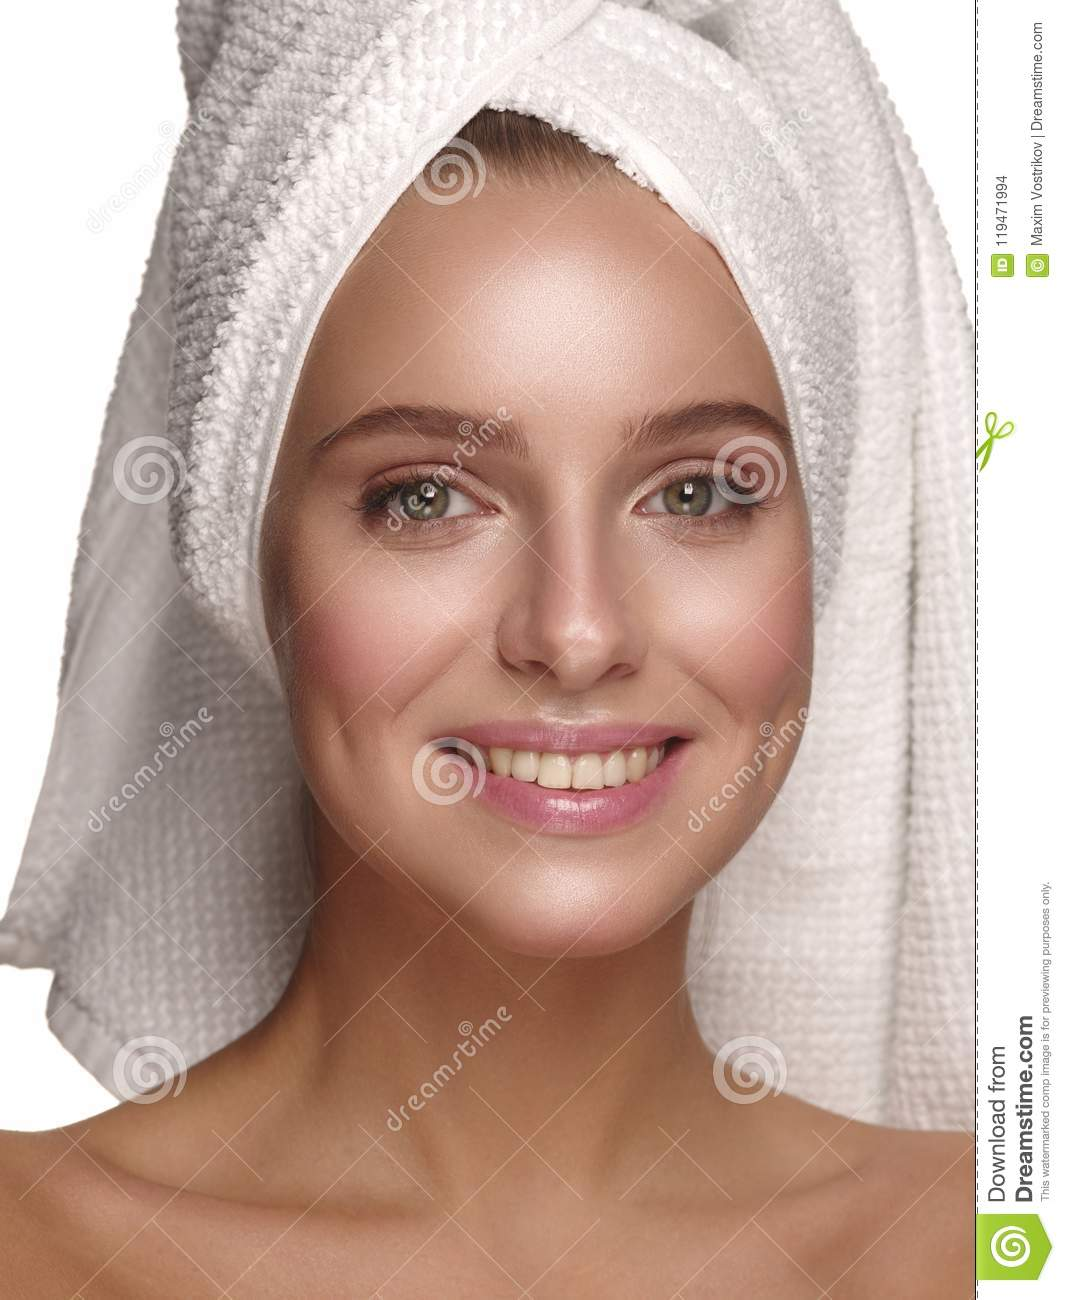 Portrait of a young girl with pure, healthy, smooth and natural glowing skin without any makeup, who is doing daily skincare